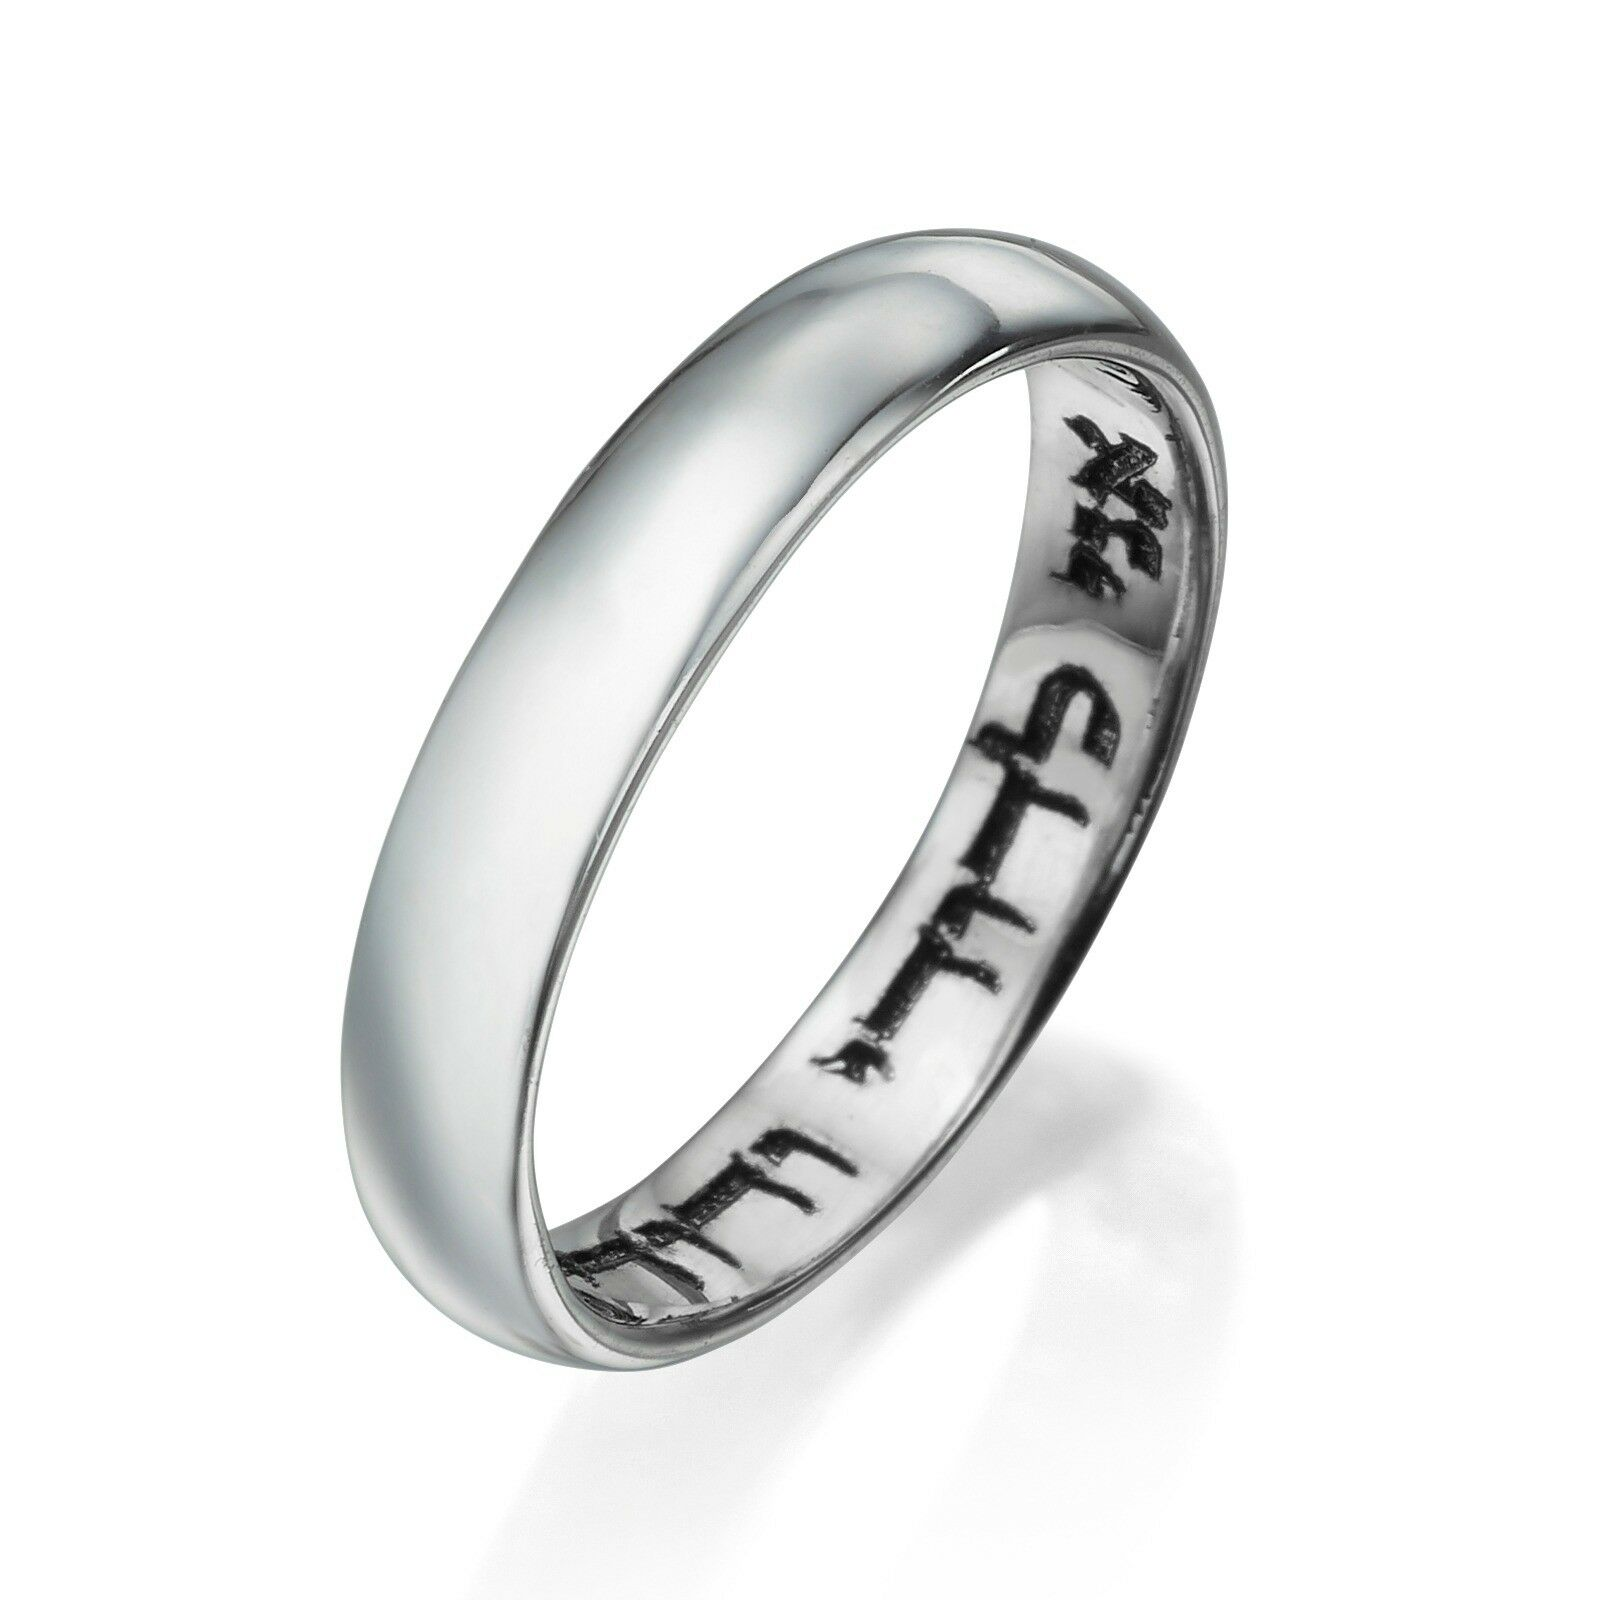 This is a photo of Details about 443k White Gold Wedding Band Jewish Ani Ledodi Laser Engraved Hebrew Ring 43.43mm